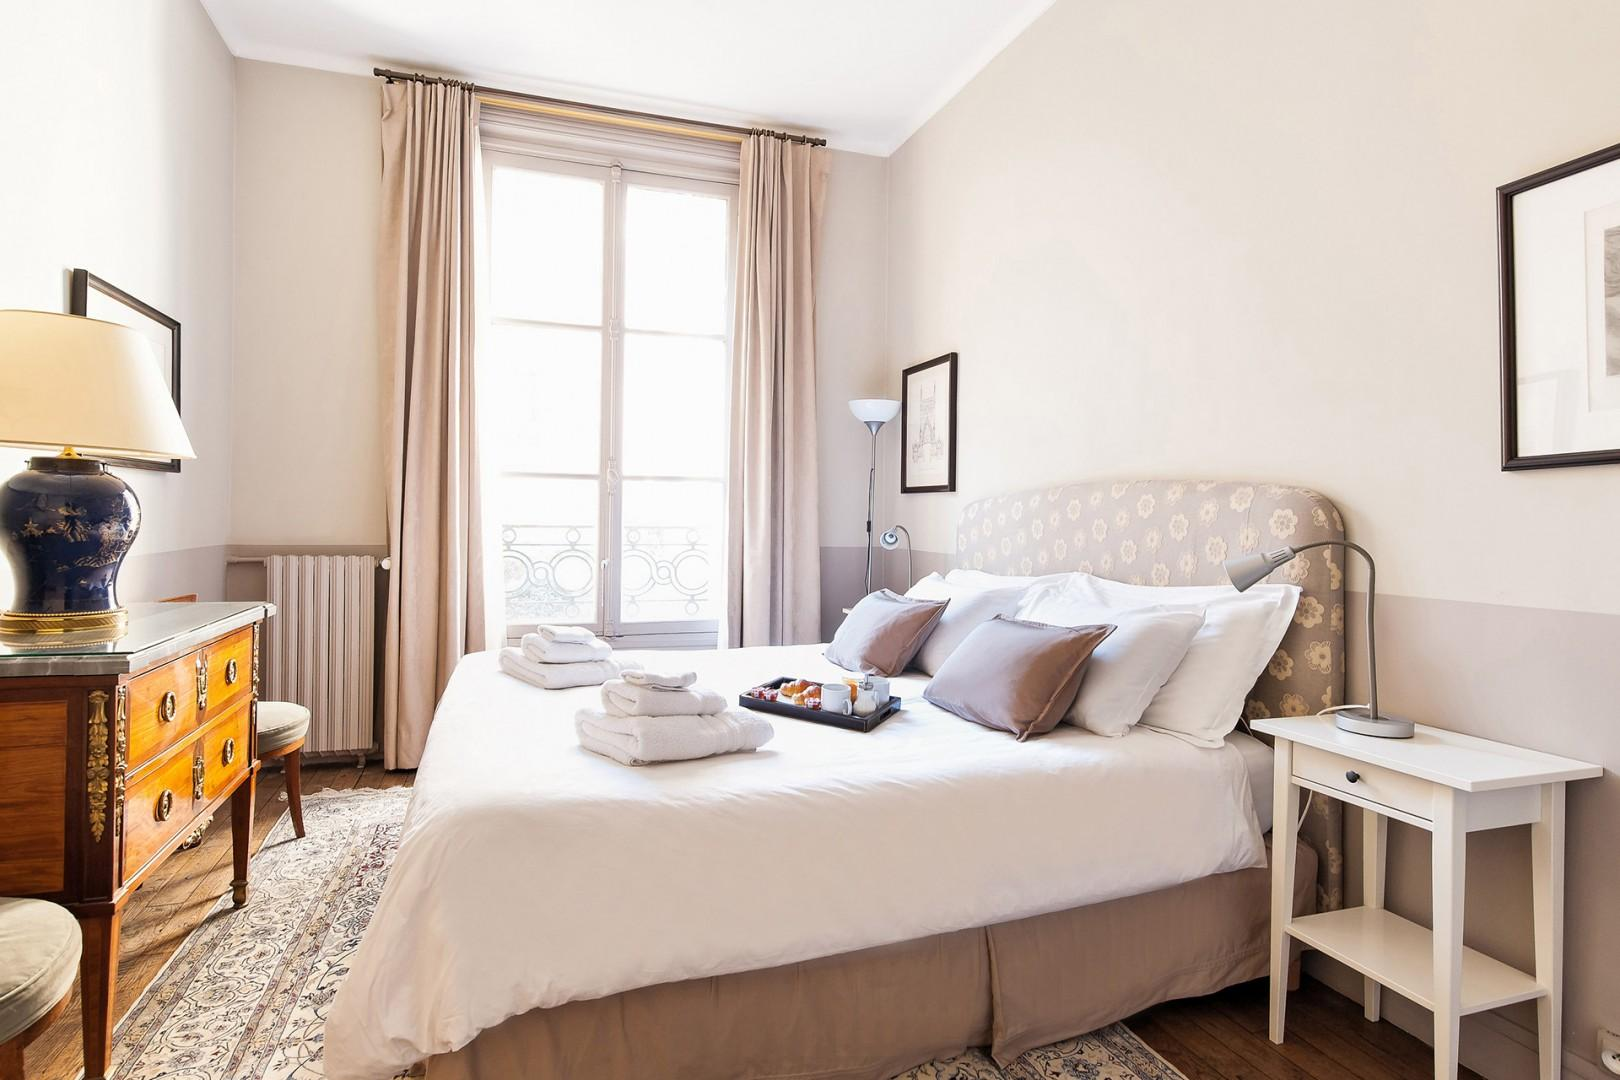 French windows and reading lamps provide plenty of natural light.